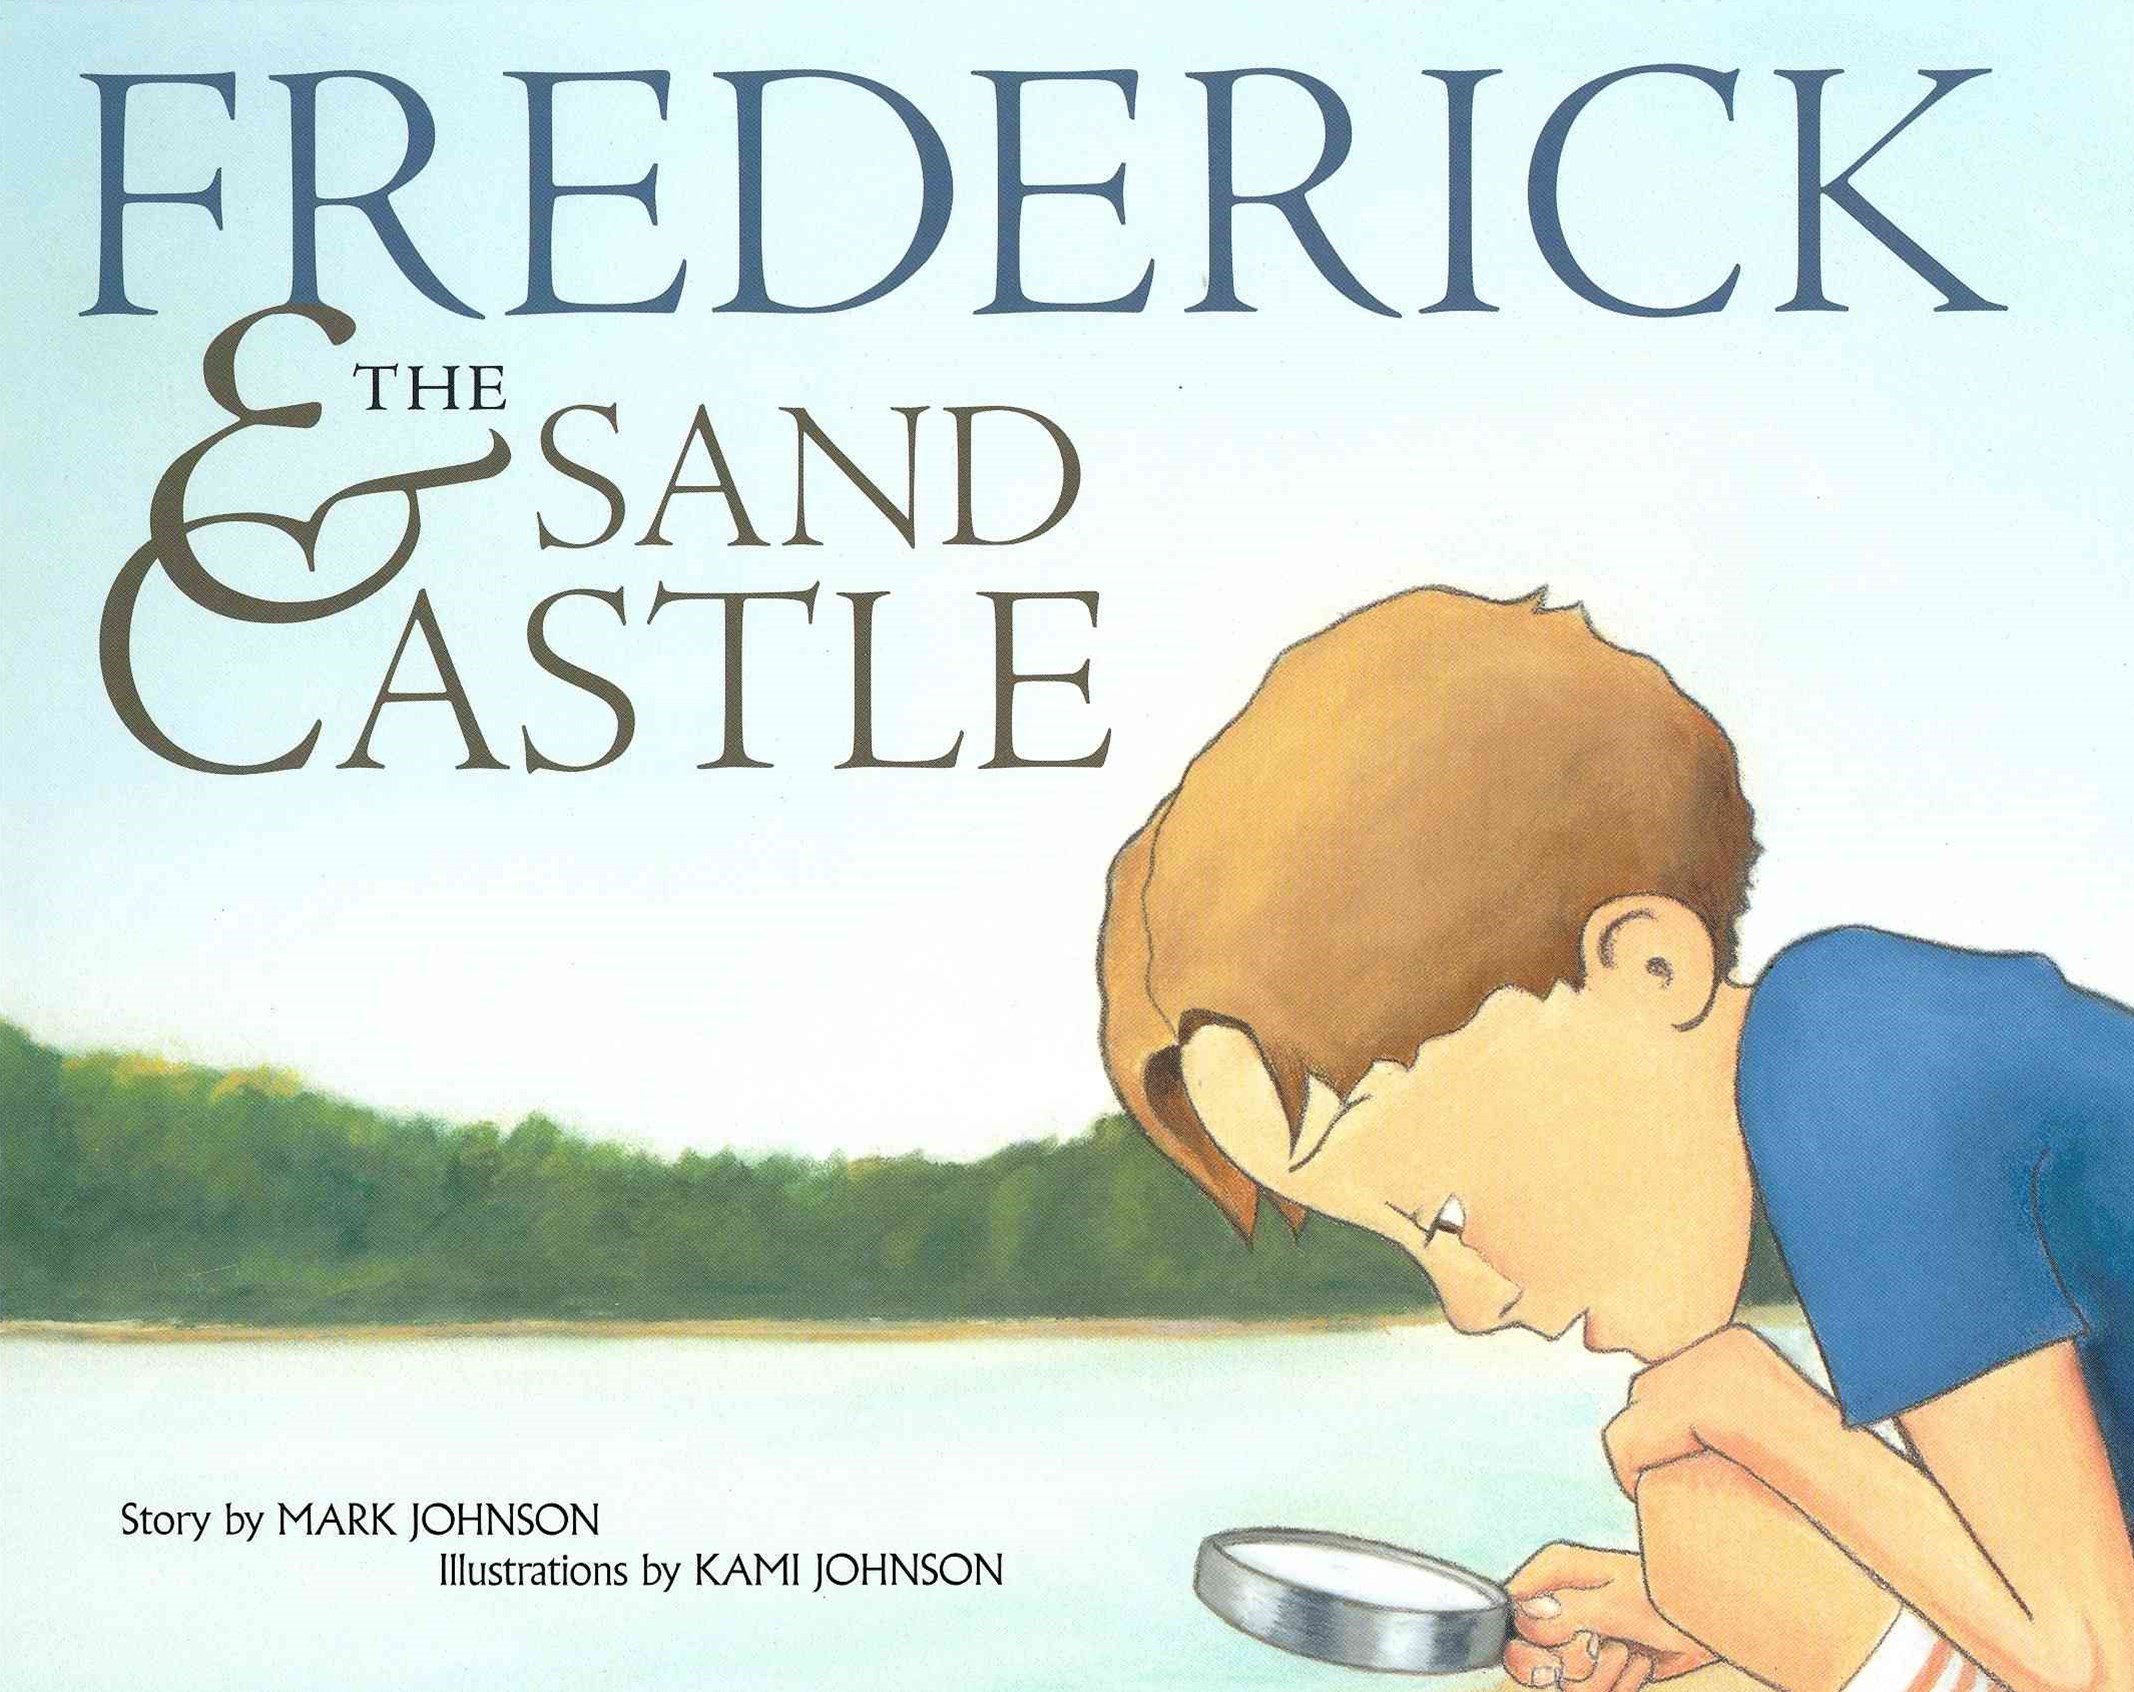 Frederick and the Sandcastle